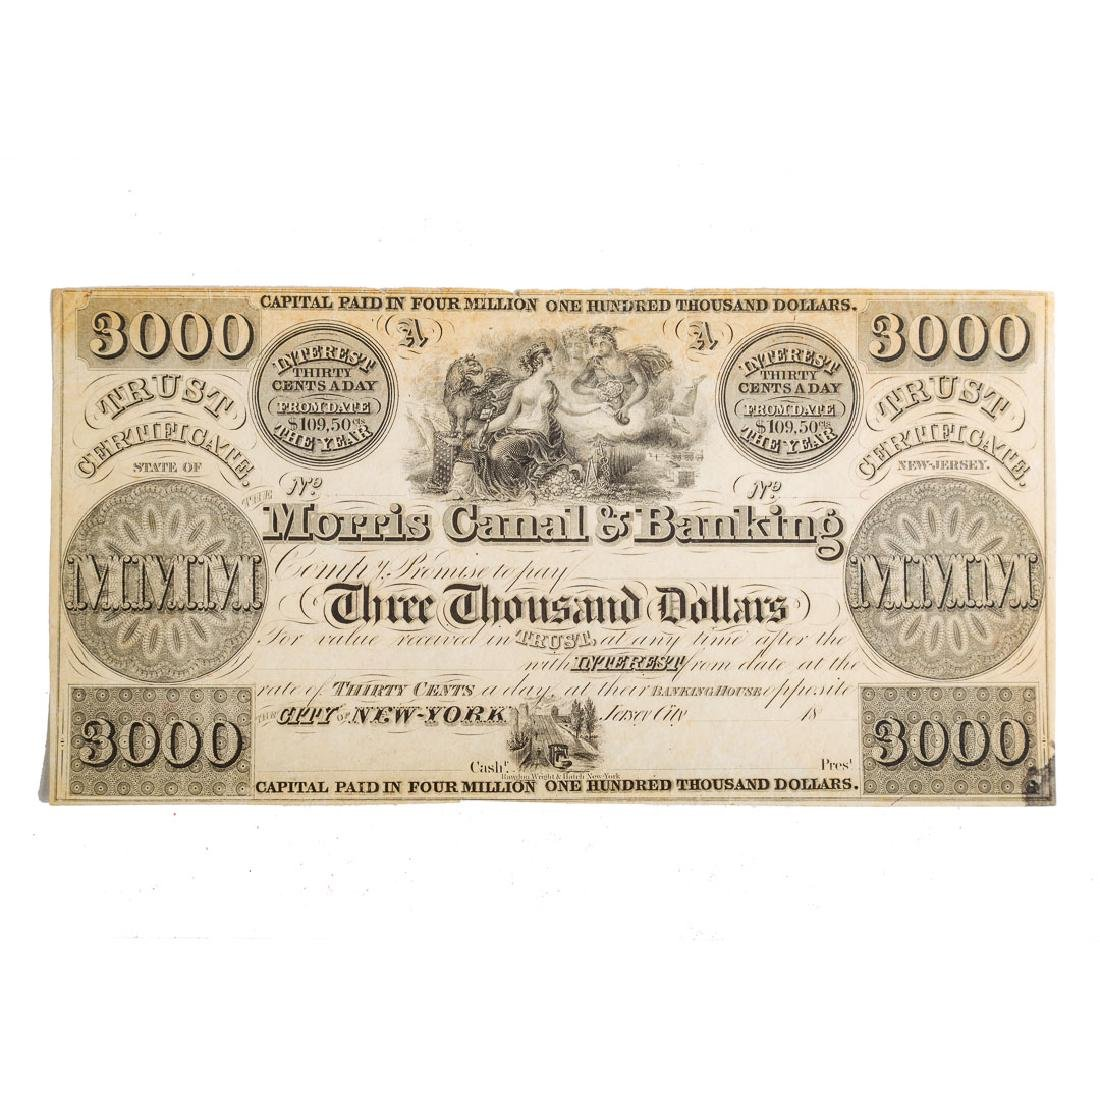 [US] The Morris Canal & Banking $3000 Remainder